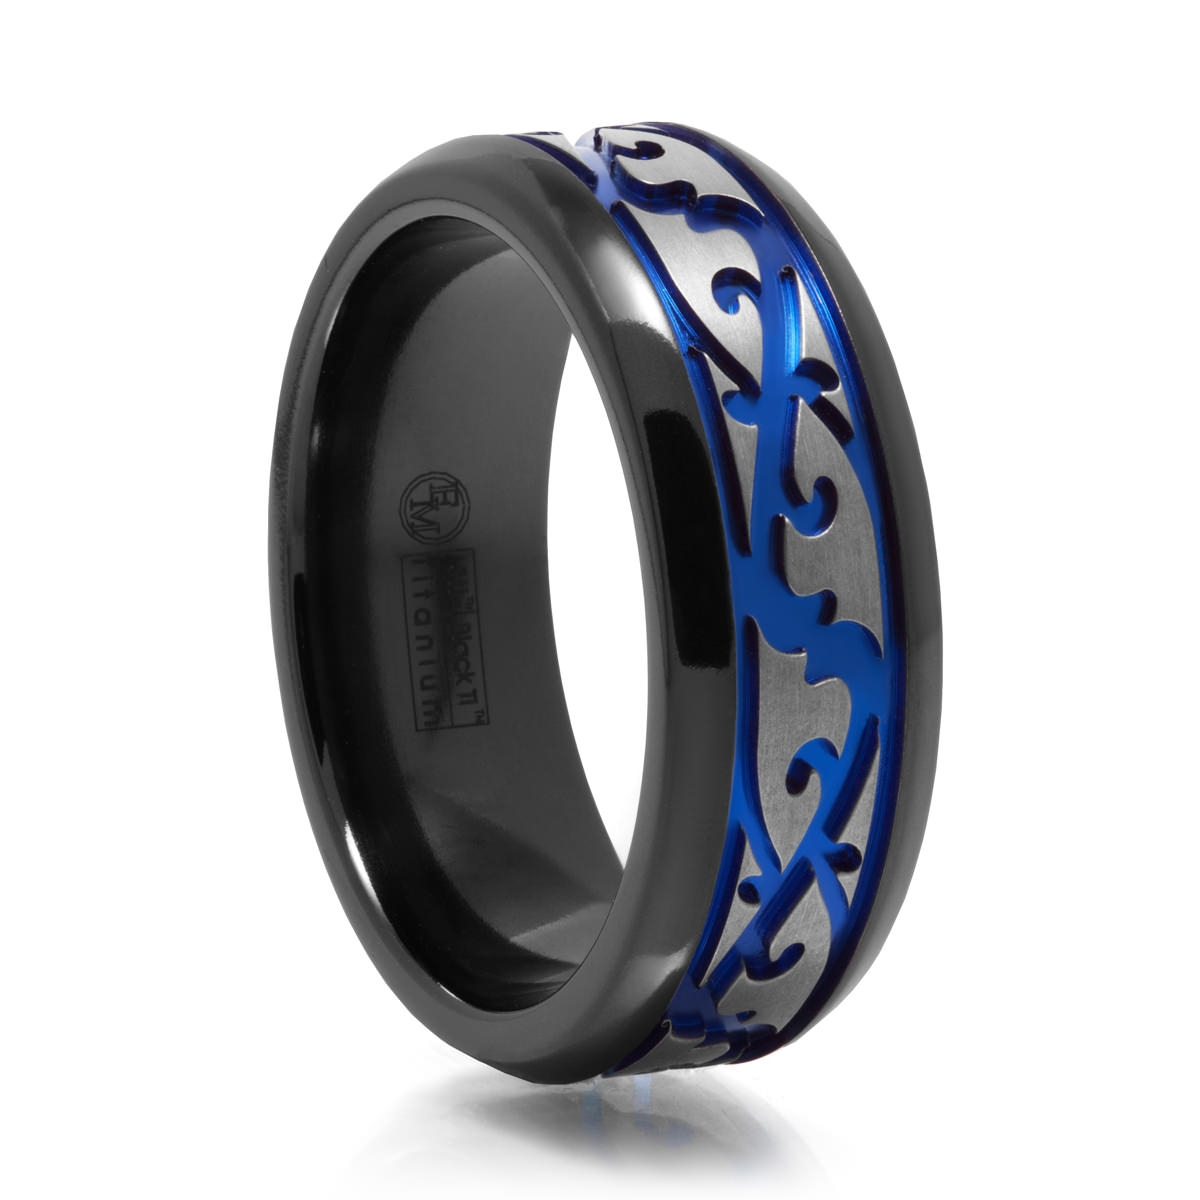 Men's Paisley Design Black Titanium Ring W/ Blue Groove With Regard To Blue Line Engagement Rings (Gallery 3 of 15)